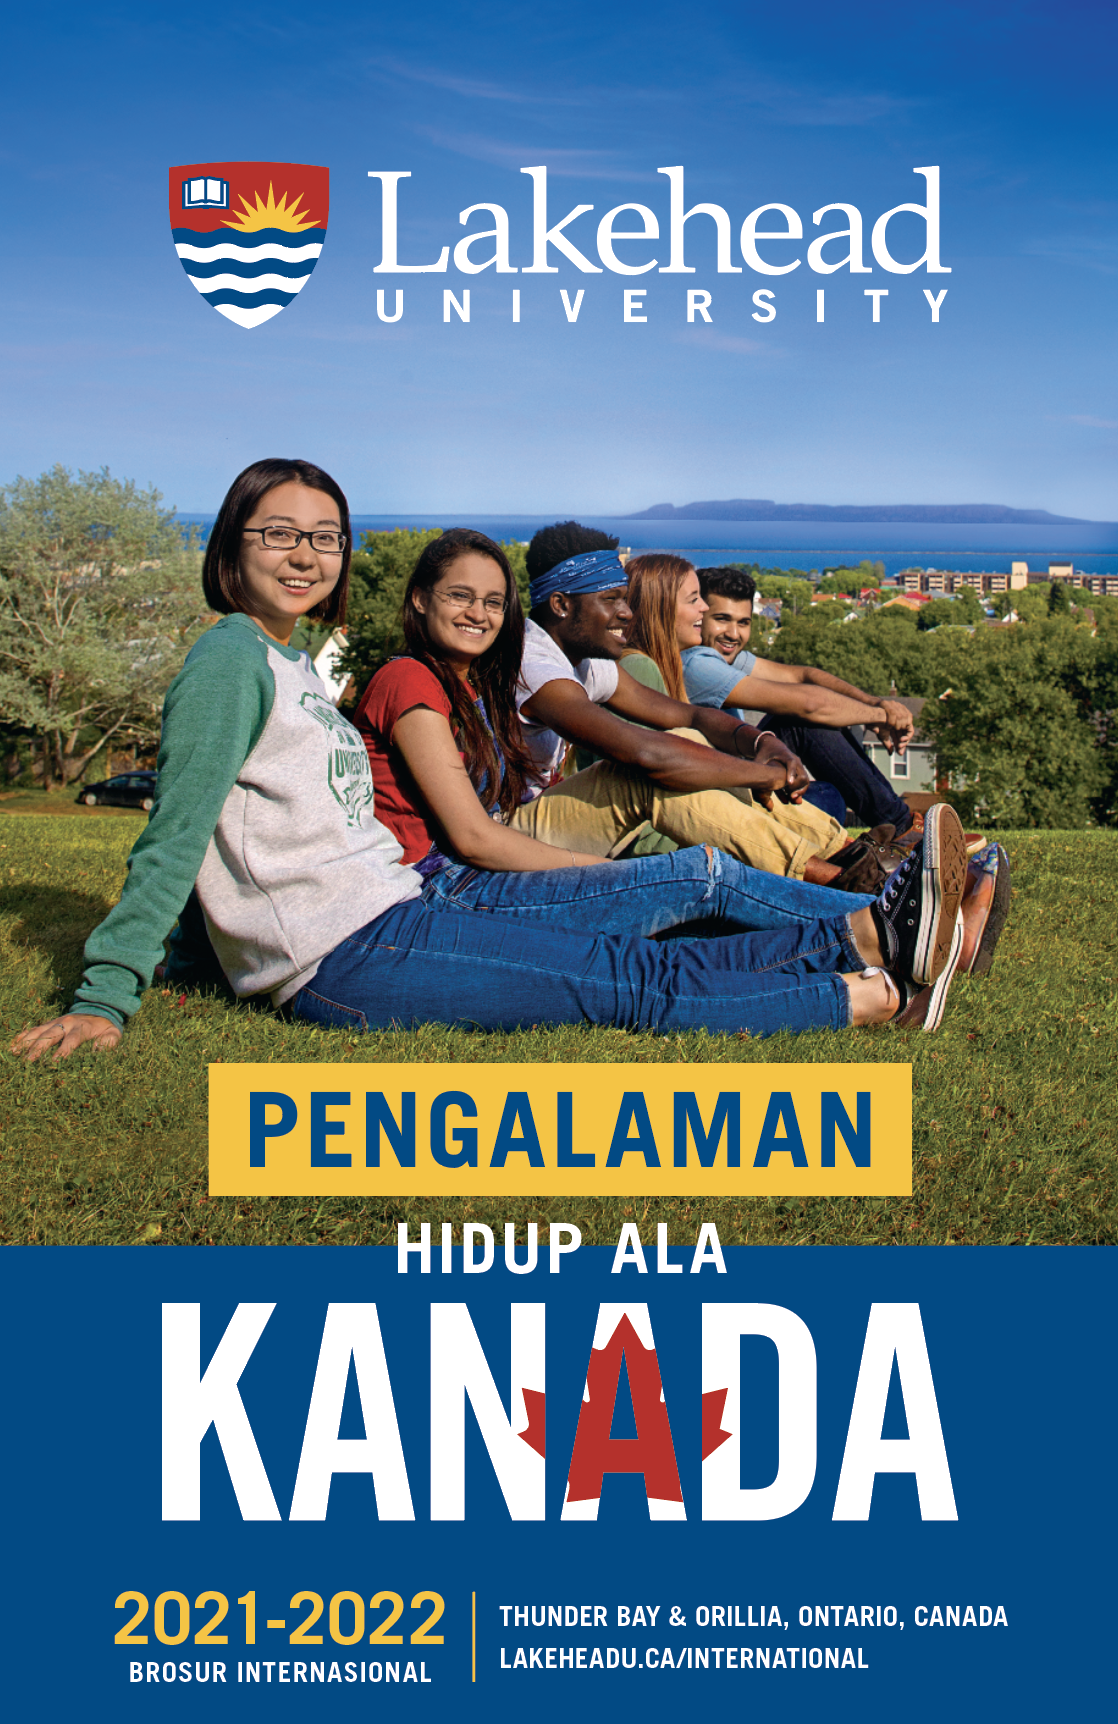 The cover of the 2021 Lakehead International Brochure in Indonesian.